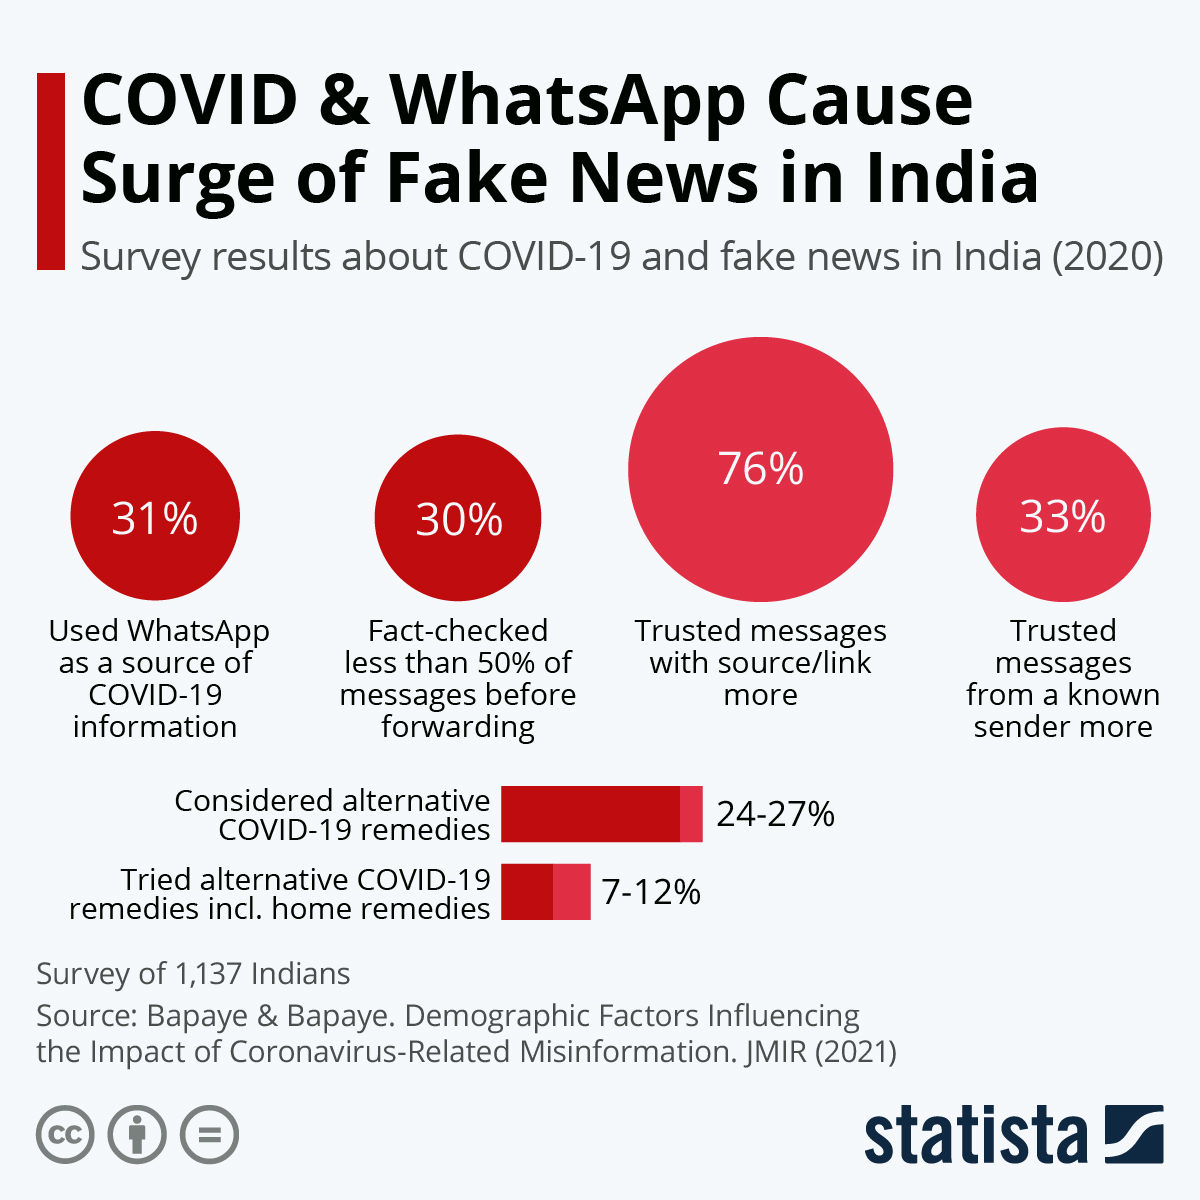 Infographic: COVID & WhatsApp Cause Surge of Fake News in India | Statista